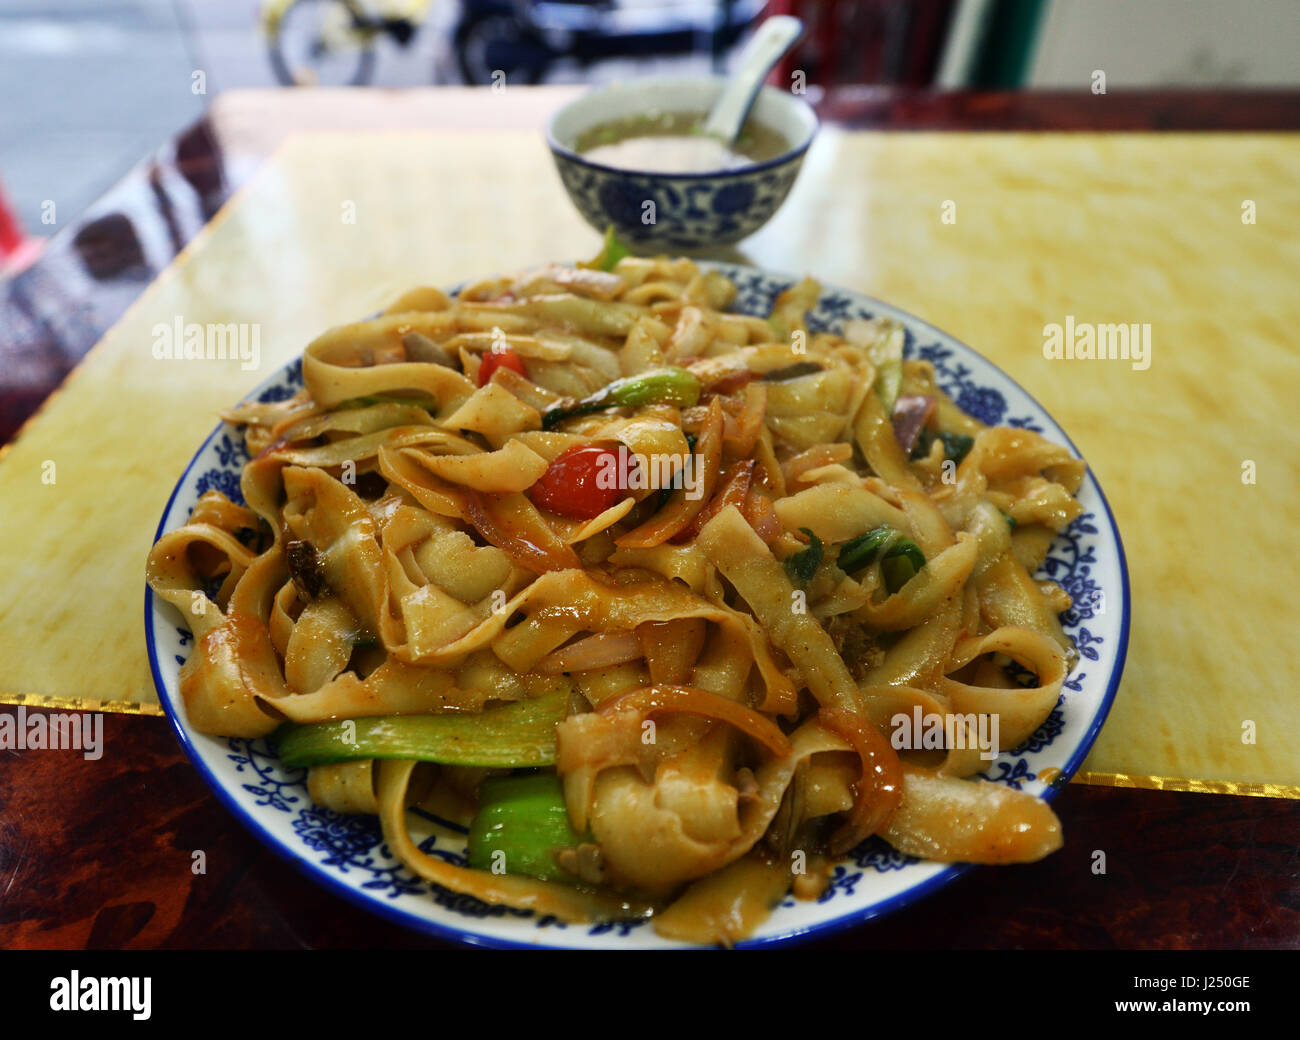 A plate of Dao Xiao Mian - Blade shaved noodles - A traditional Hui Muslim dish from Shanxi, China. - Stock Image